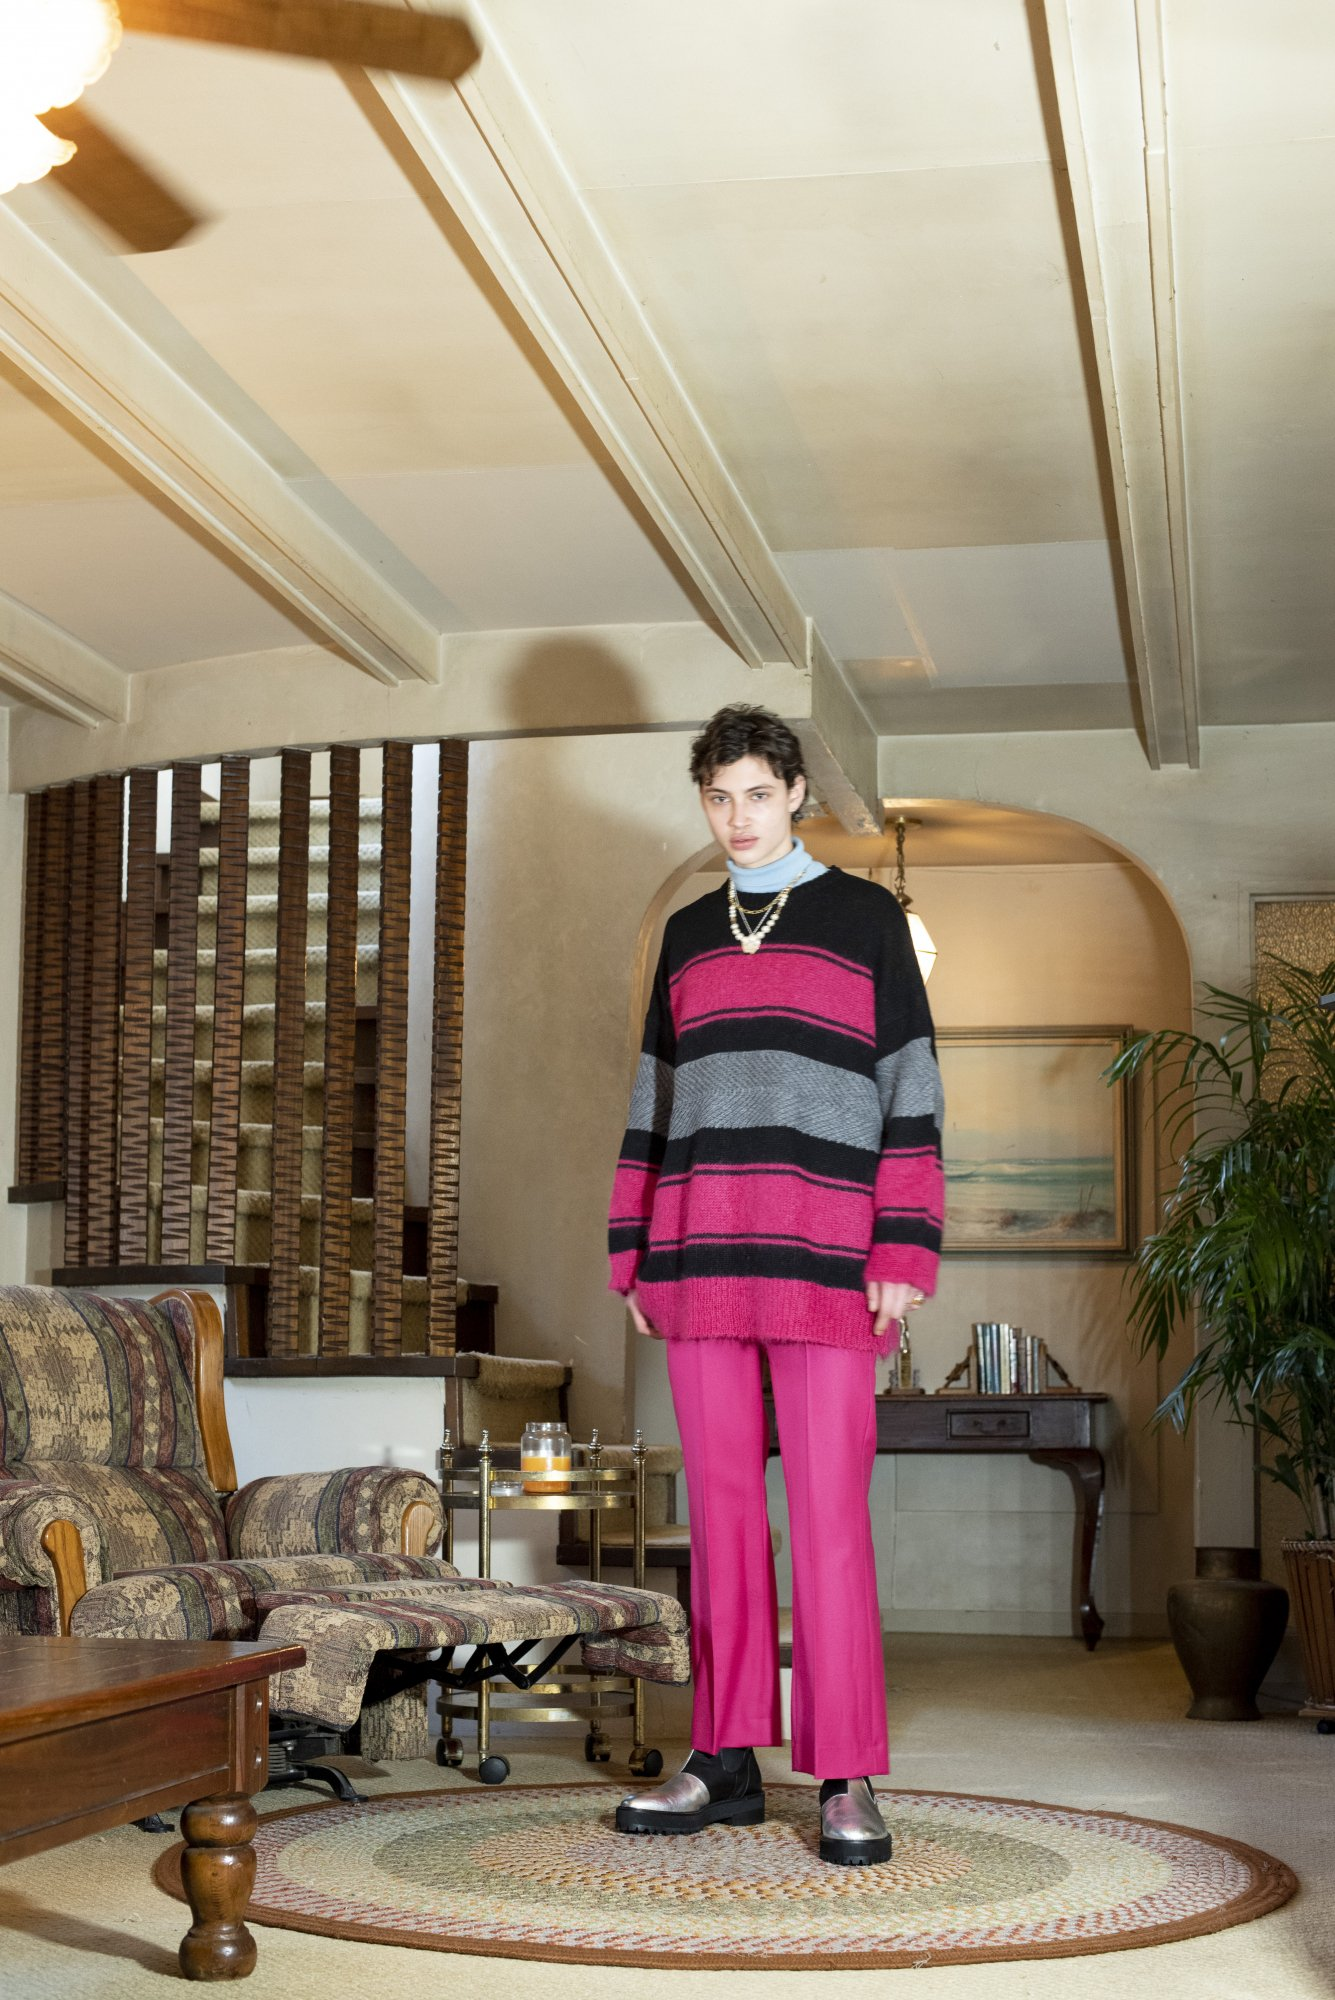 DAIRIKU<br />Molly Border Mohair Knit / Dancing Pink<img class='new_mark_img2' src='https://img.shop-pro.jp/img/new/icons47.gif' style='border:none;display:inline;margin:0px;padding:0px;width:auto;' />